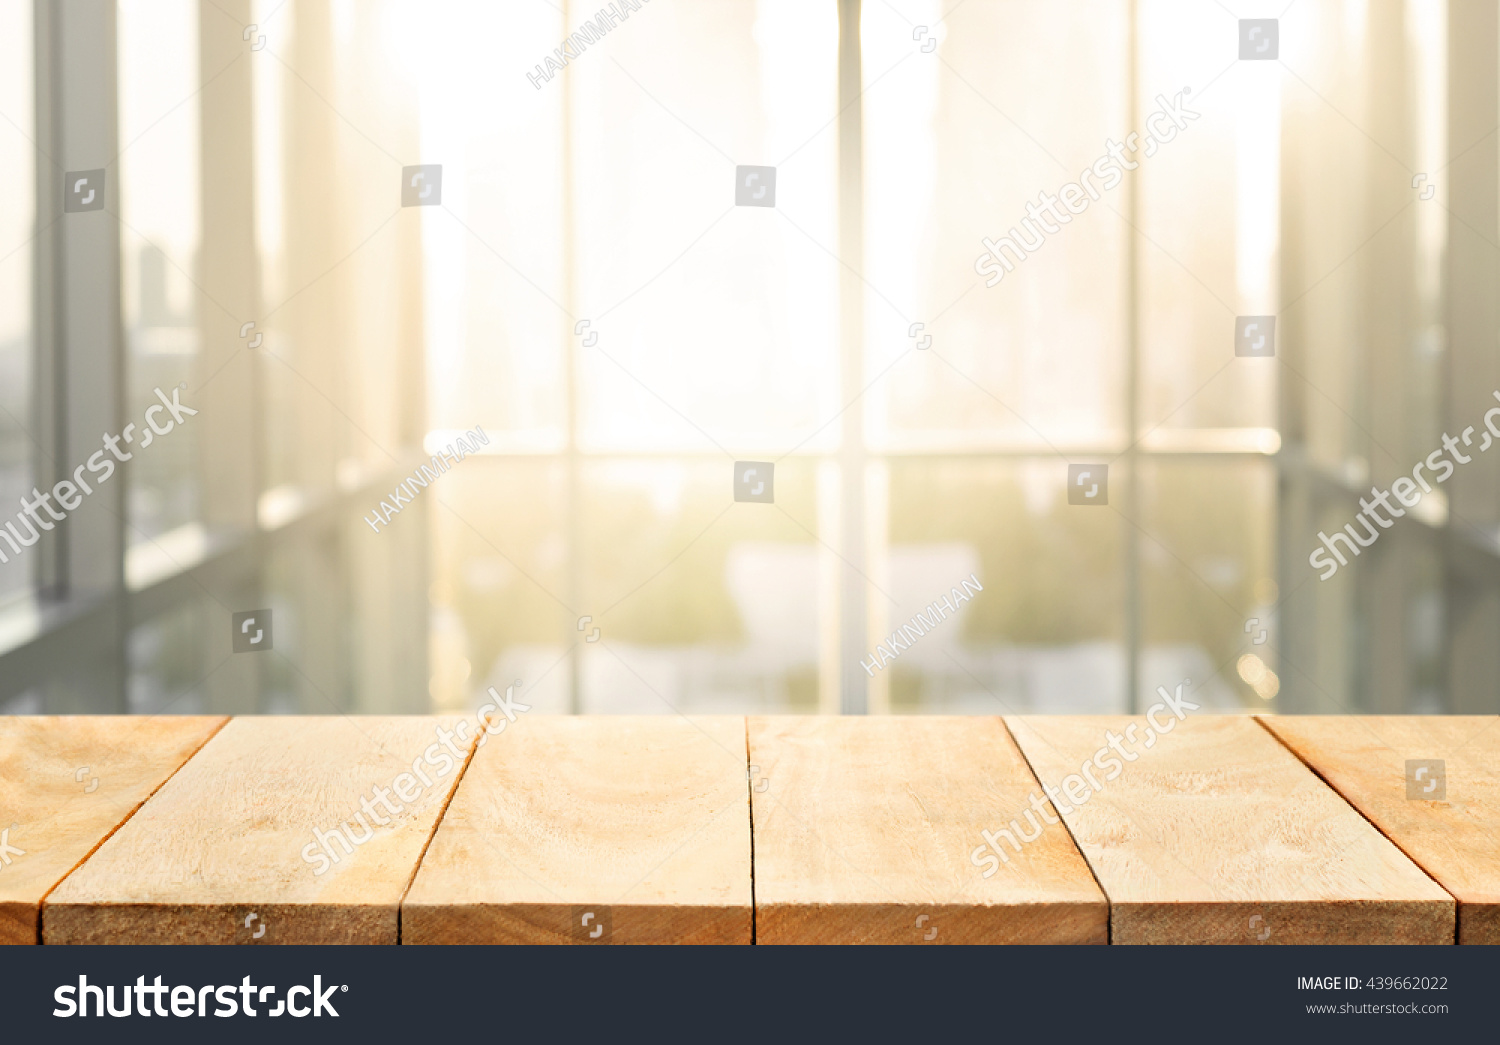 Superbe Wood Table Top With Blur Sunlight In Glass Window Of Building Background.For  Montage Product